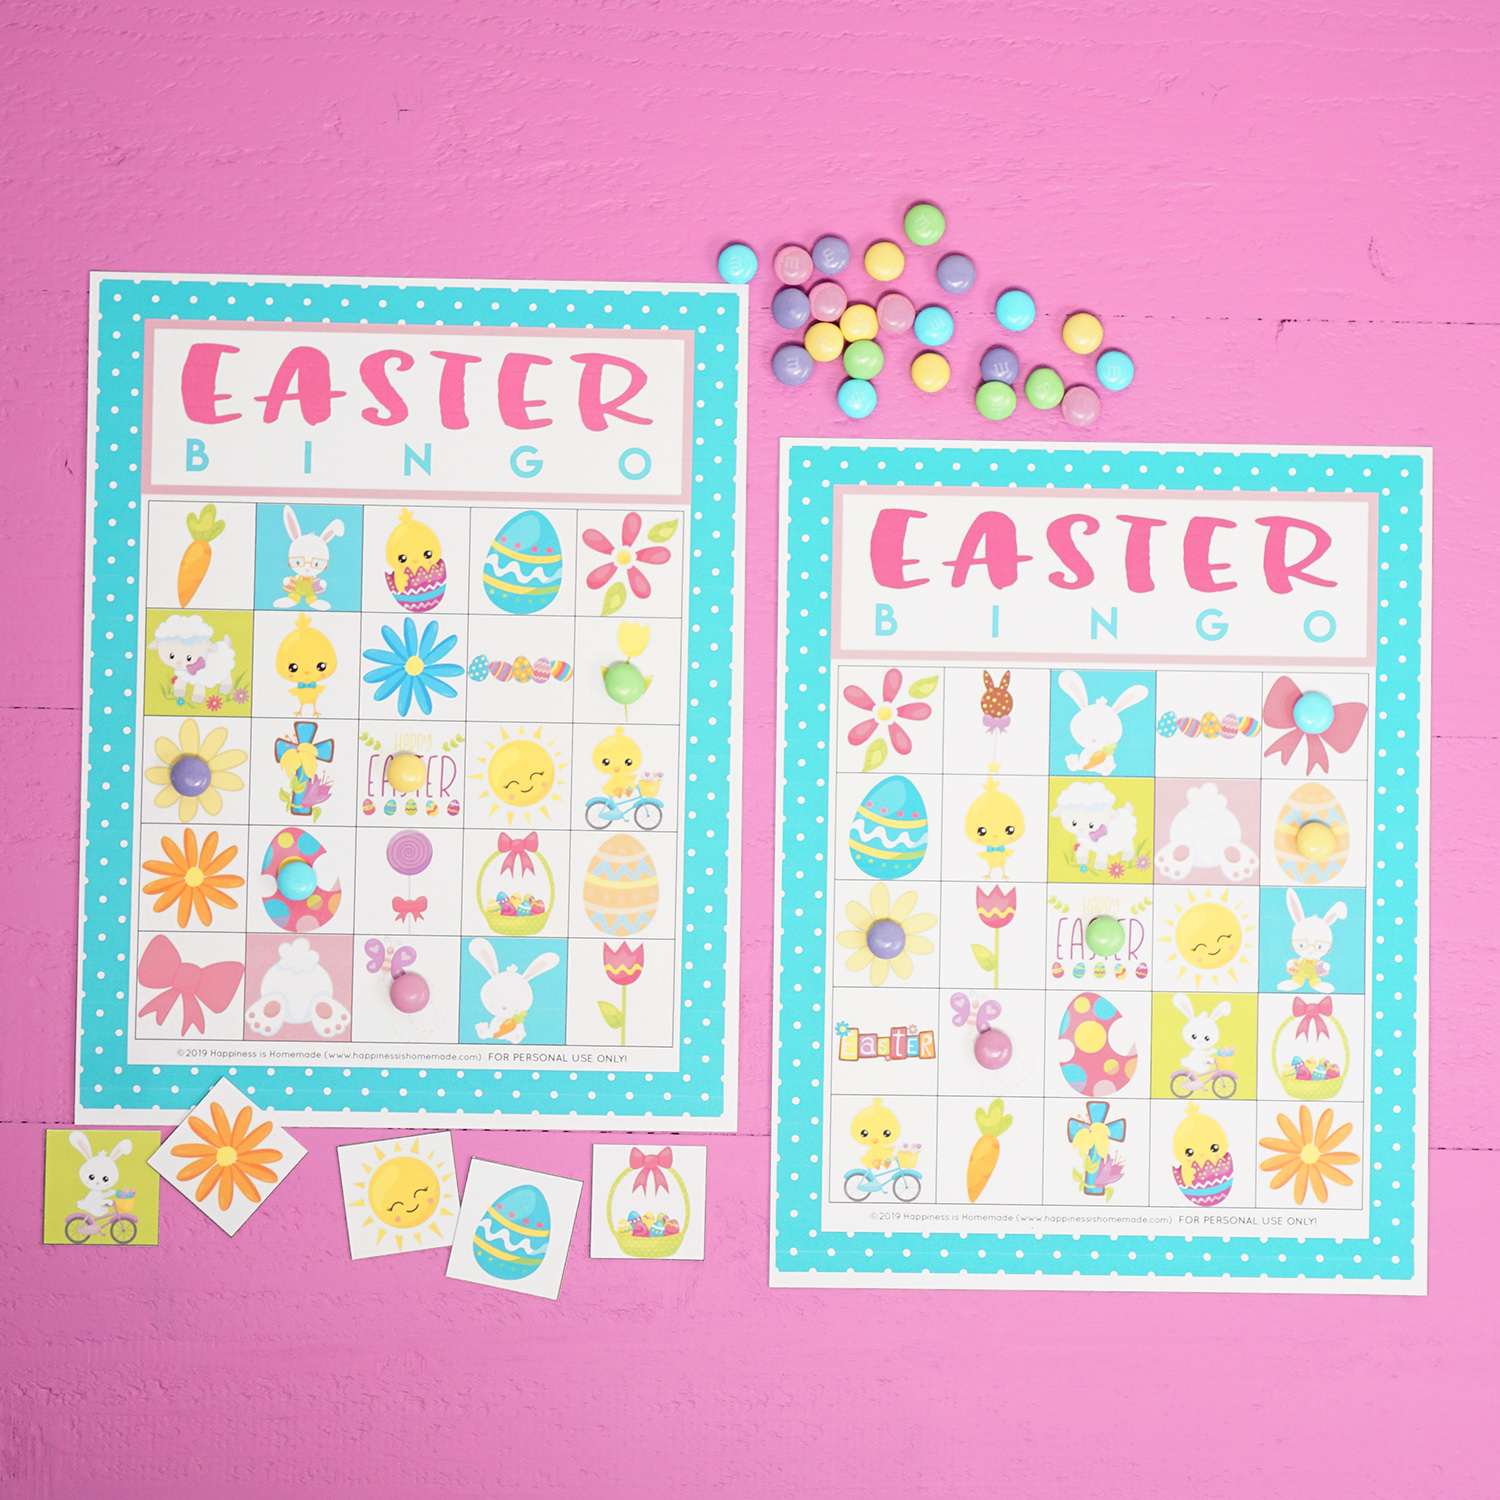 picture about Free Printable Easter Bingo Cards identified as Absolutely free Printable Easter Bingo Recreation Playing cards - Joy is Home made